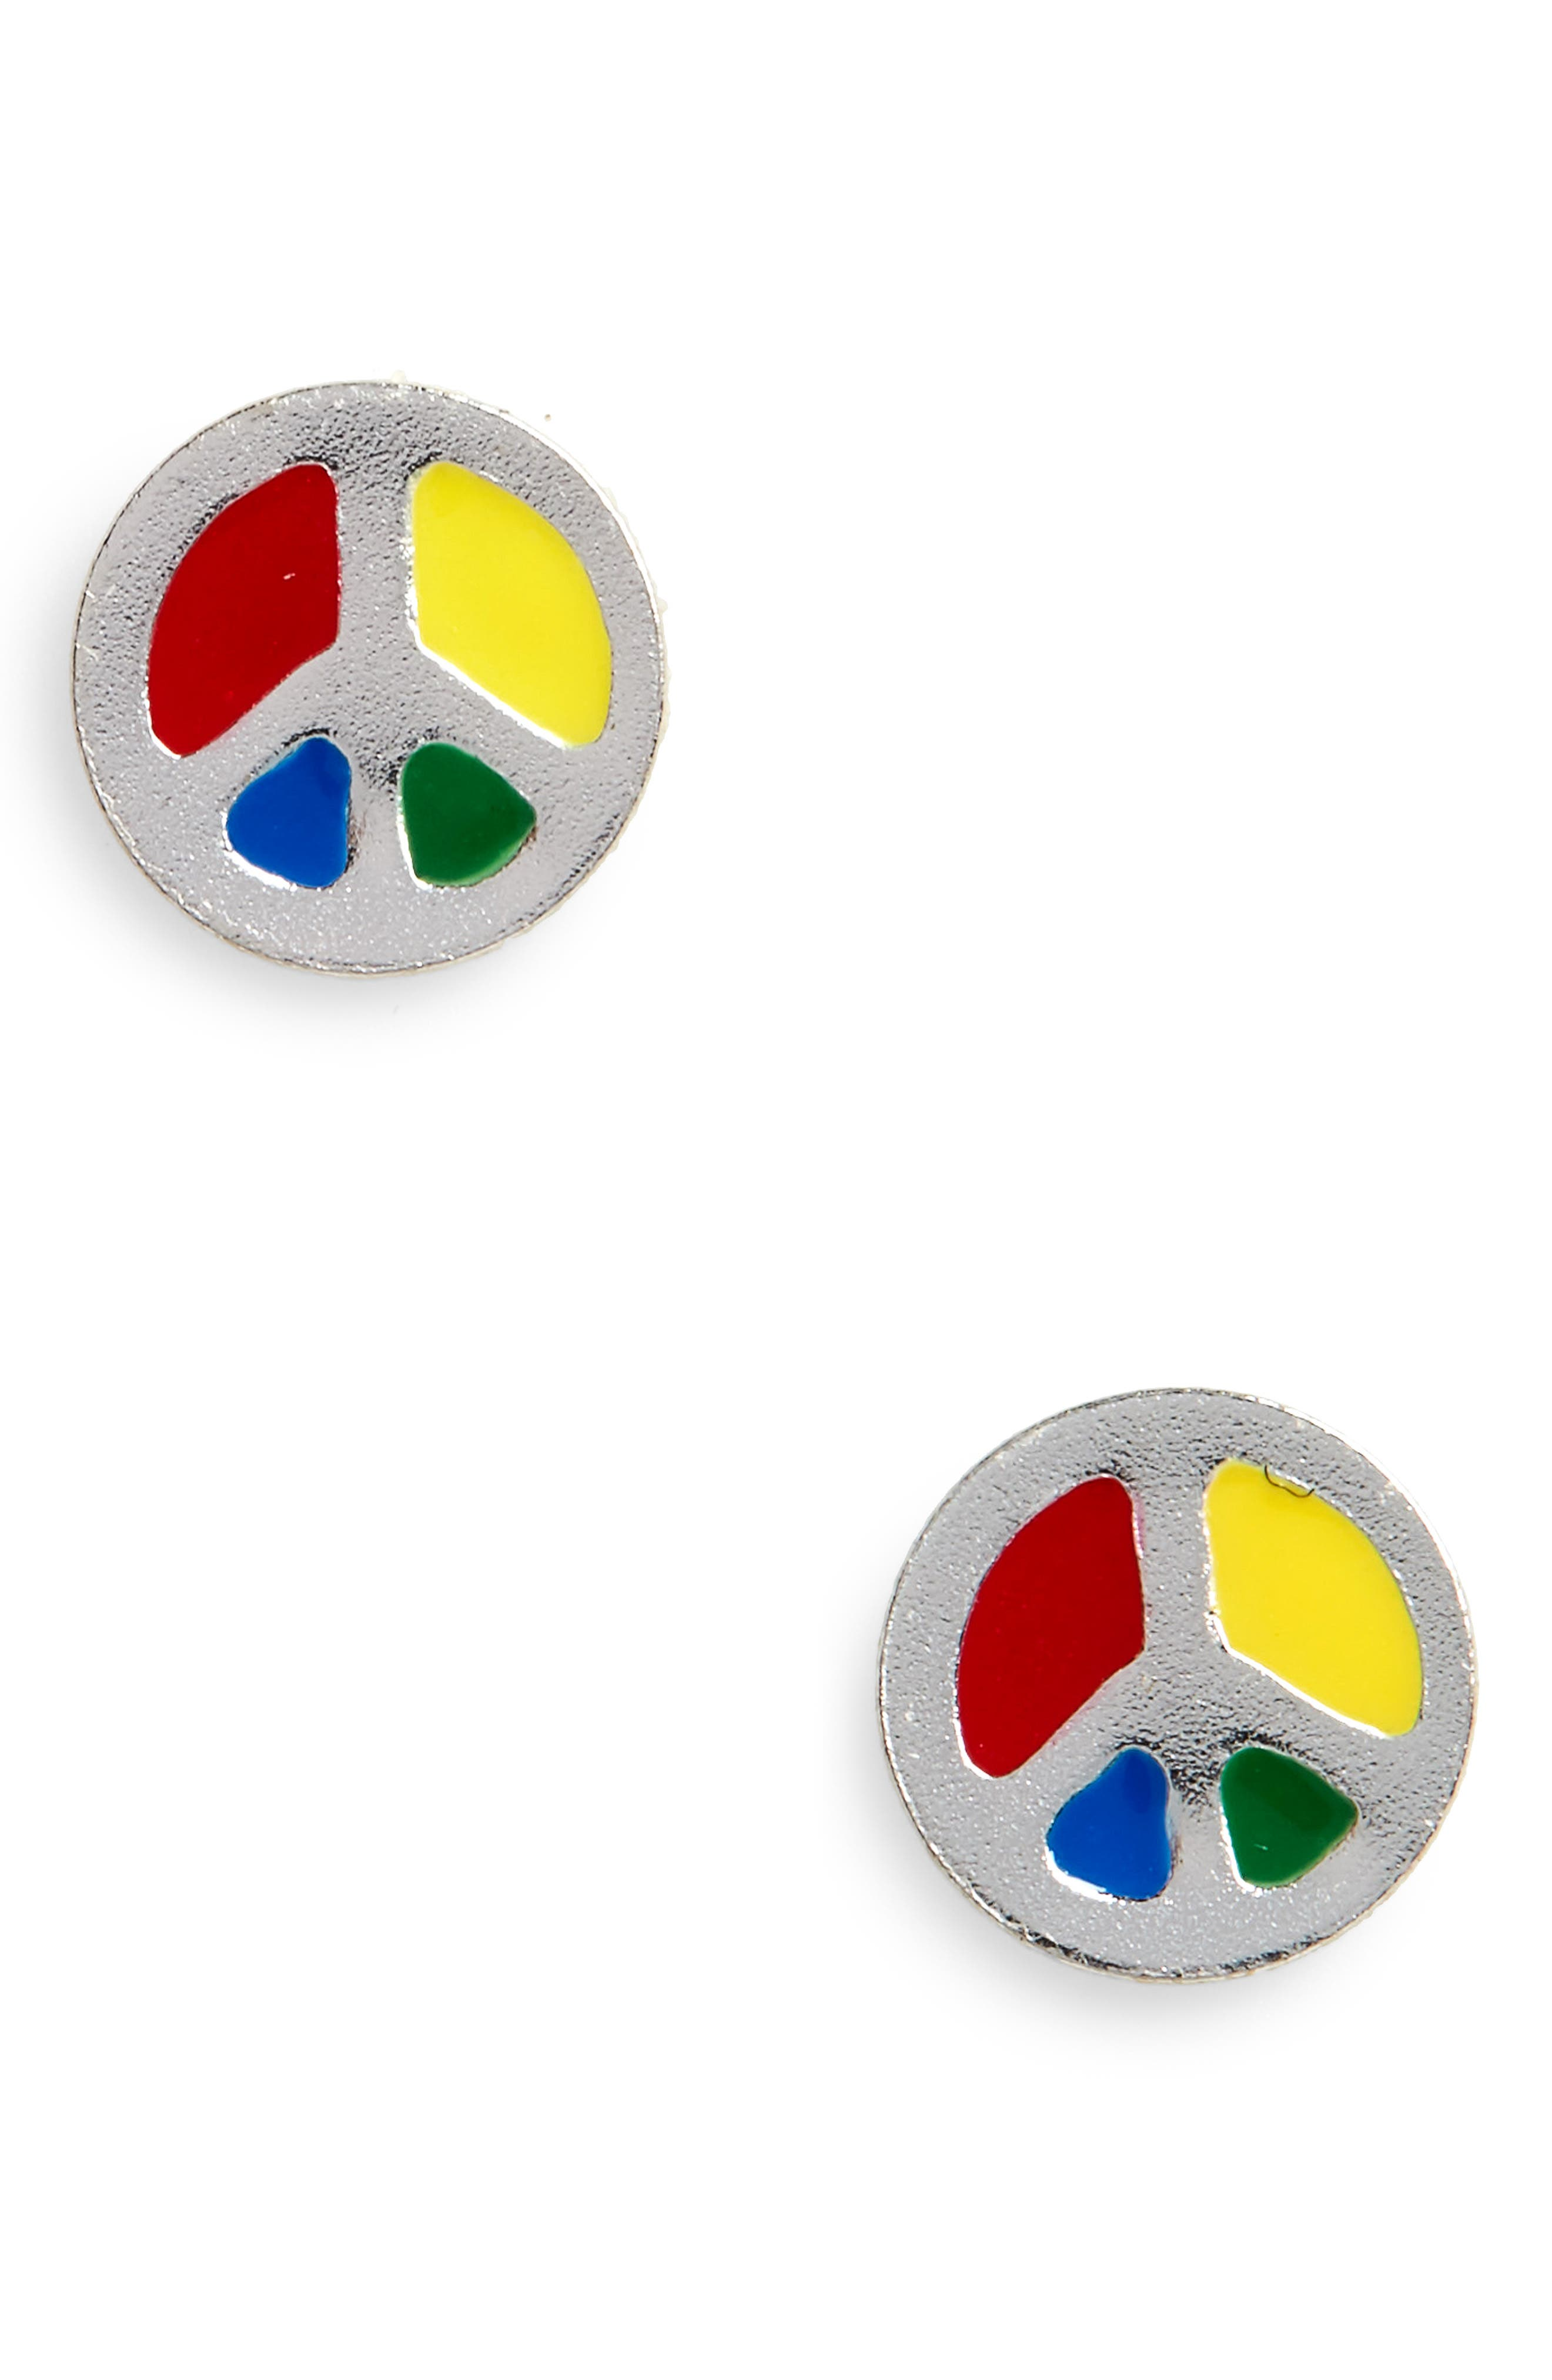 Peace Sign Sterling Silver Stud Earrings,                         Main,                         color, Red/ Blue/ Yellow